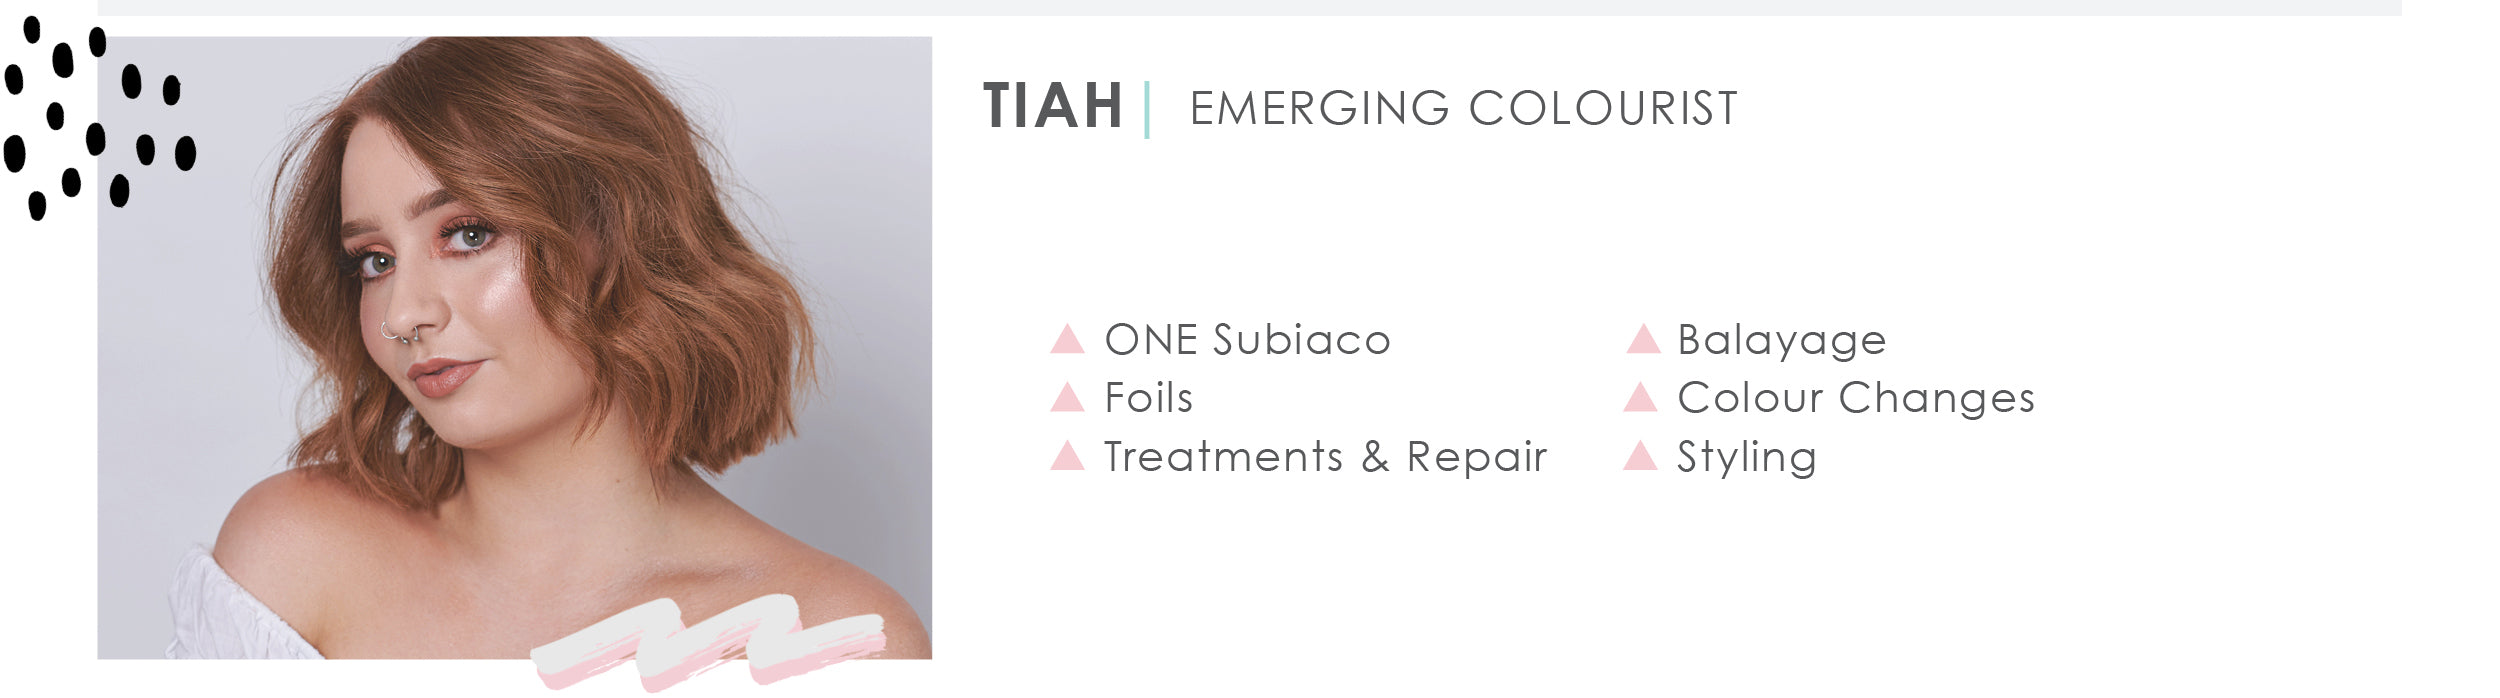 ABOUT Tiah ONE Subiaco Hair Salon Emerging Colourist Perth